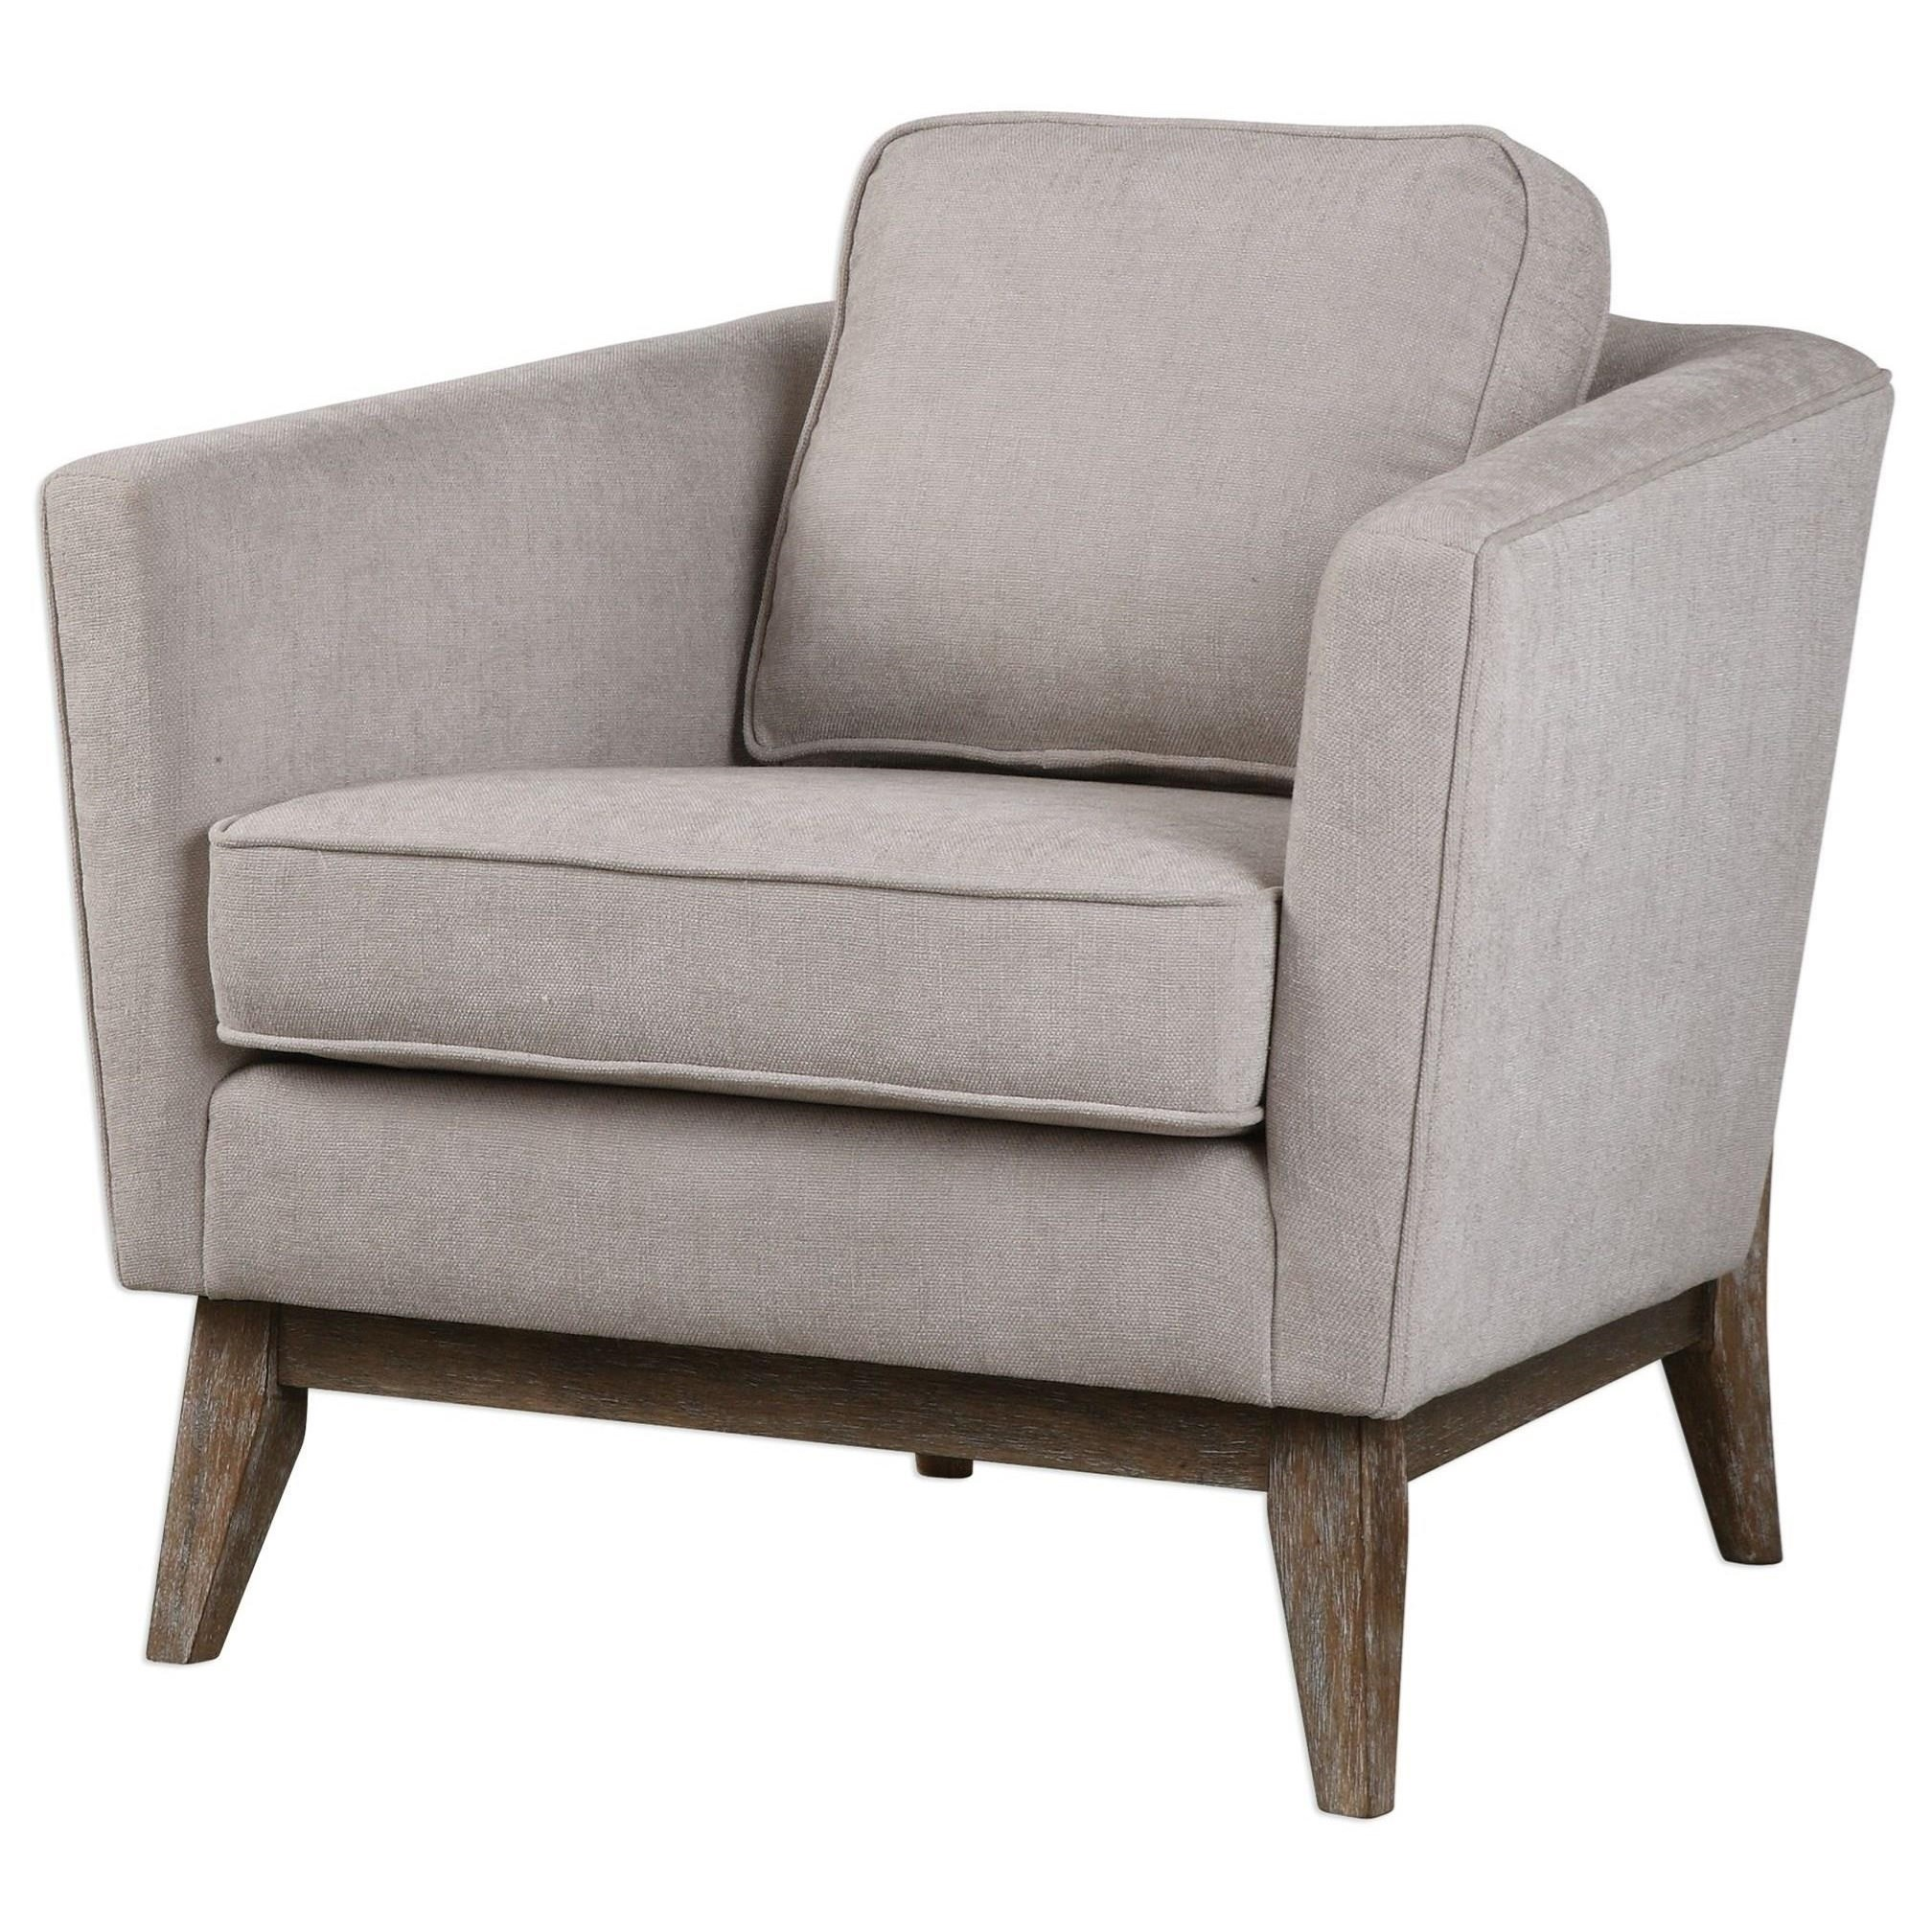 Accent Furniture - Accent Chairs Varner Beige Linen Accent Chair by Uttermost at Del Sol Furniture